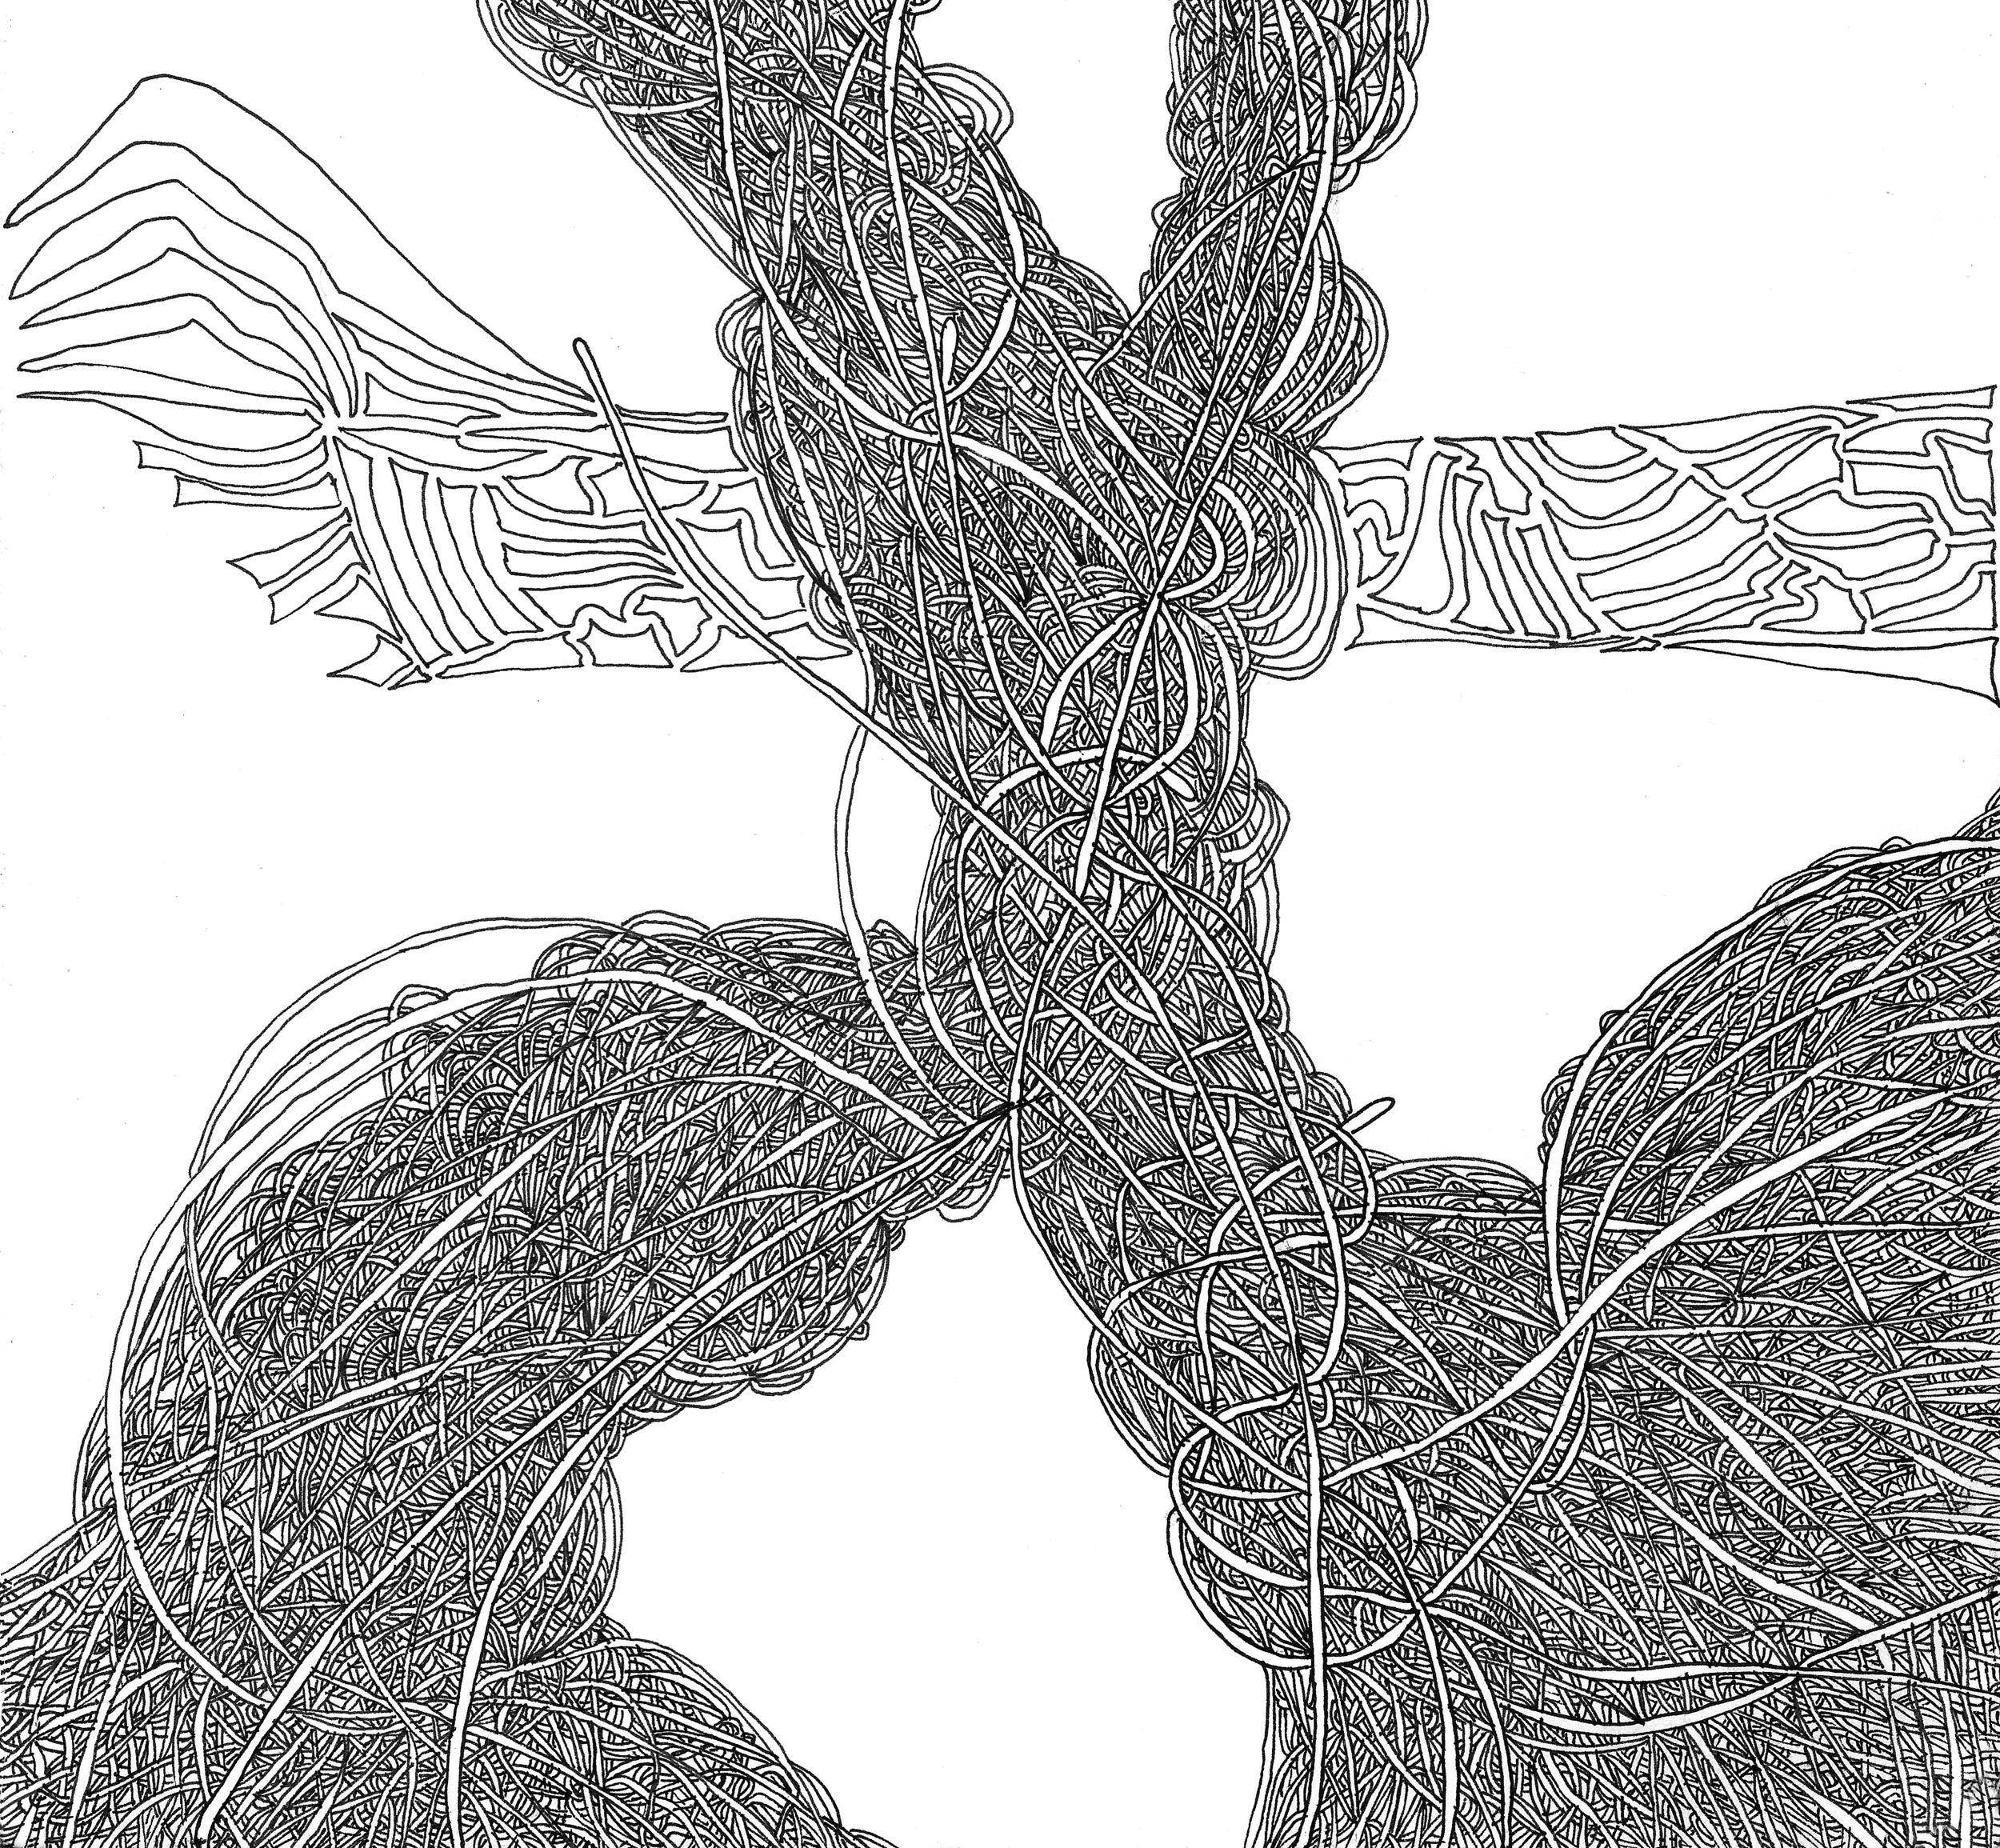 Beginning  (2014)  Acid Free Pen and Paper 5 in x 7 in 8 in x 10 in